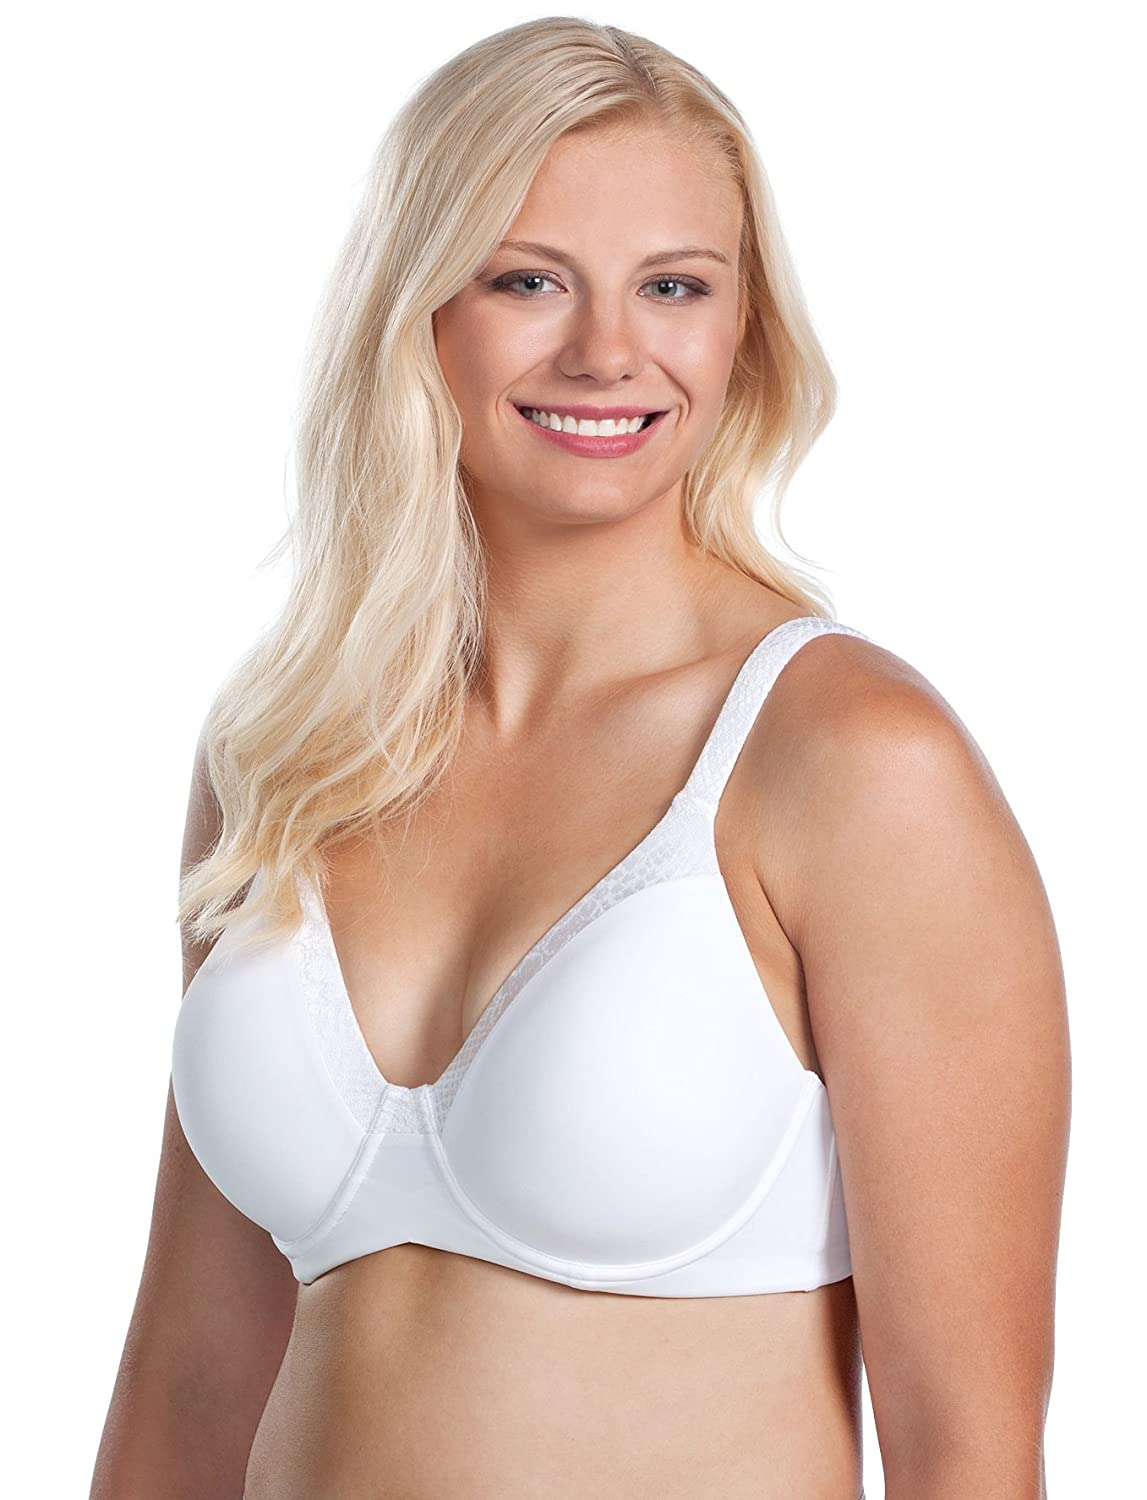 12a52da77c Leading Lady Women s Plus Size Luxe Body T-Shirt Bra Wirefree at Amazon  Women s Clothing store